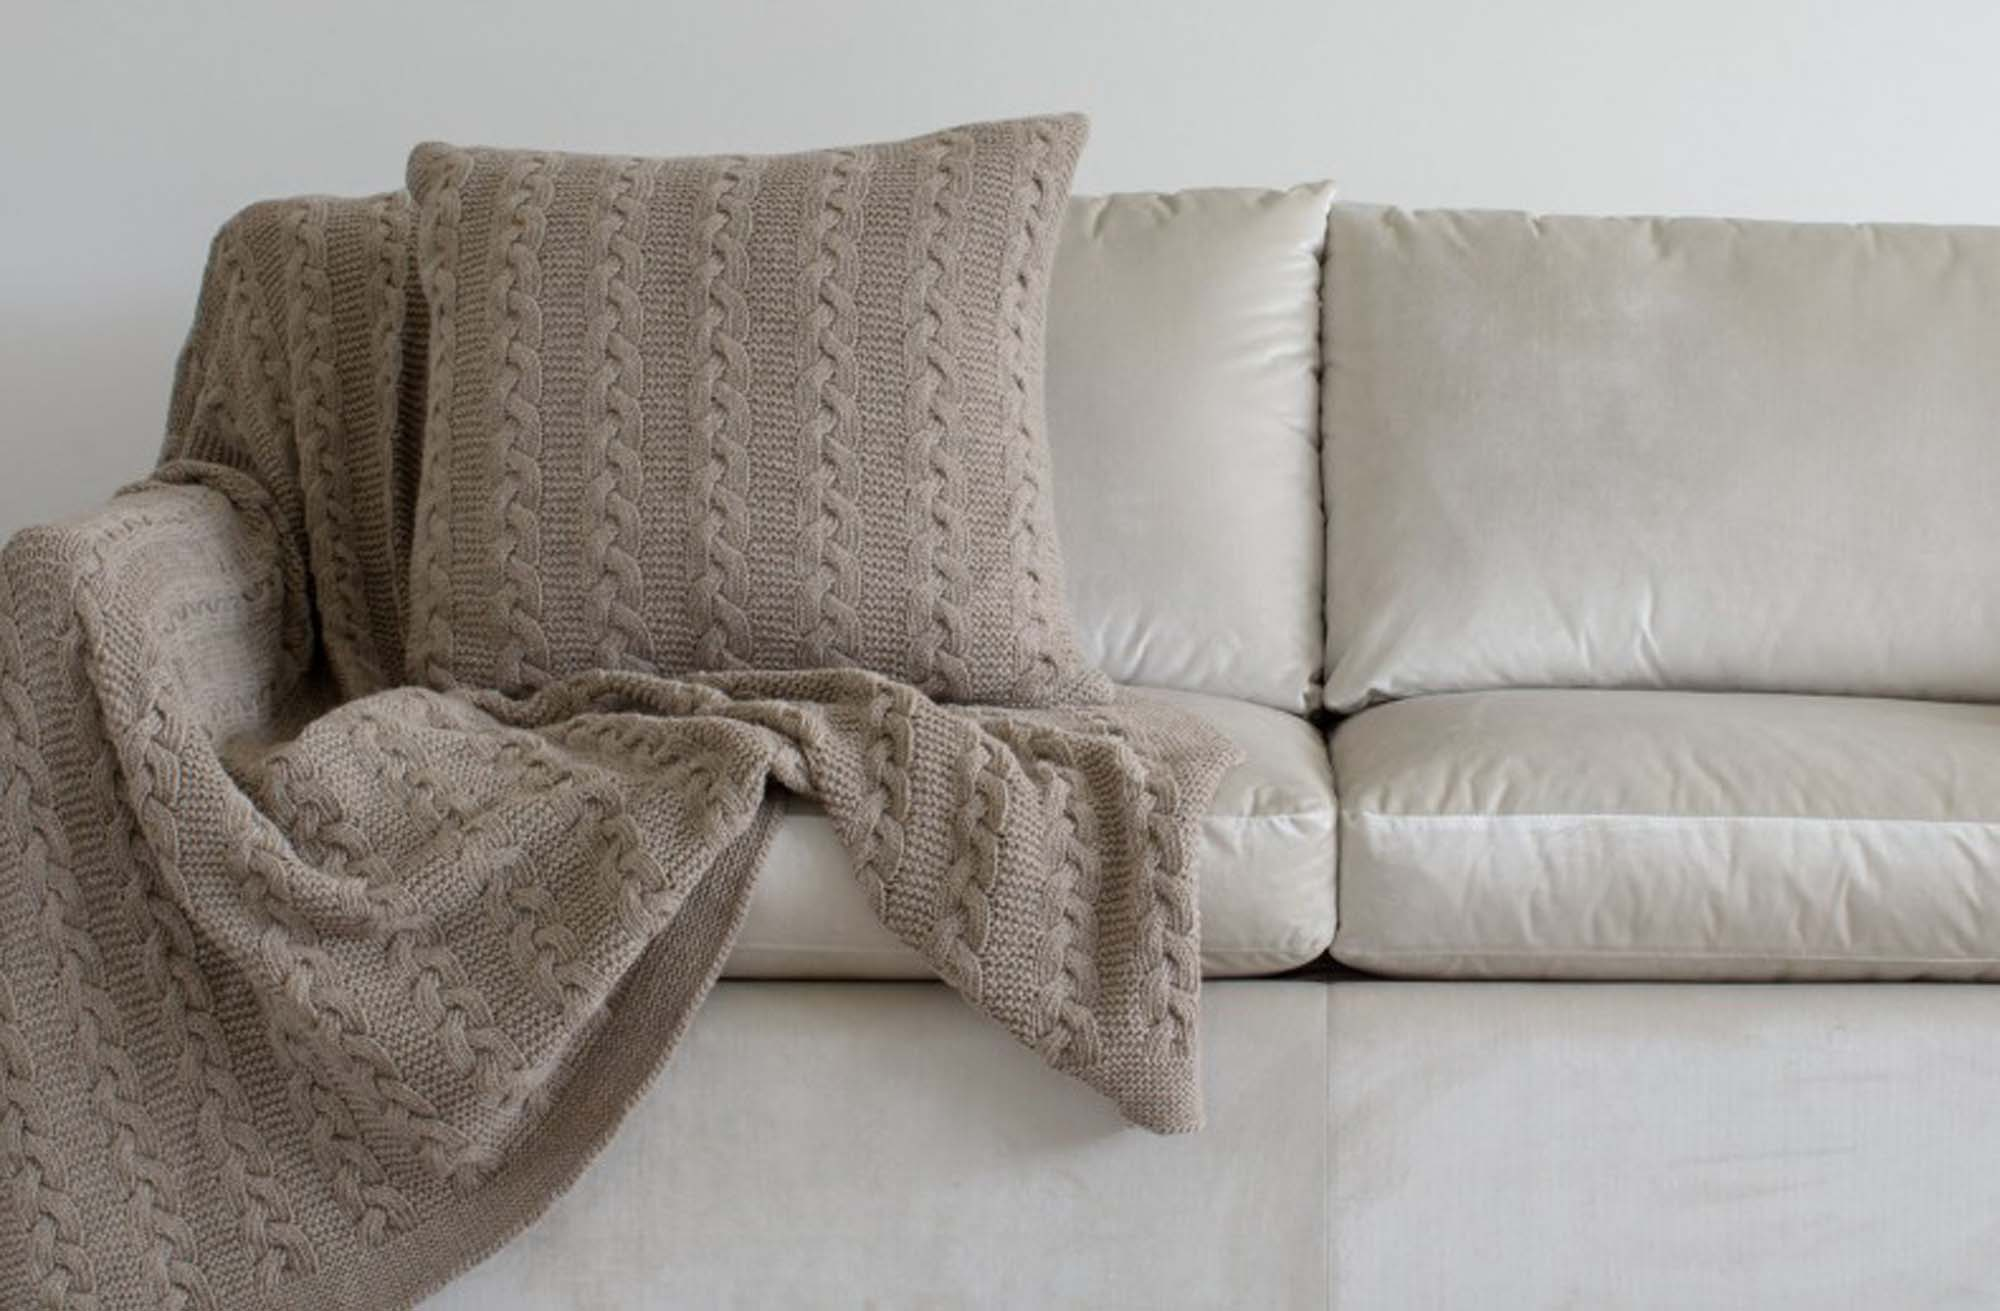 Kelly Hoppen taupe lambswool throw